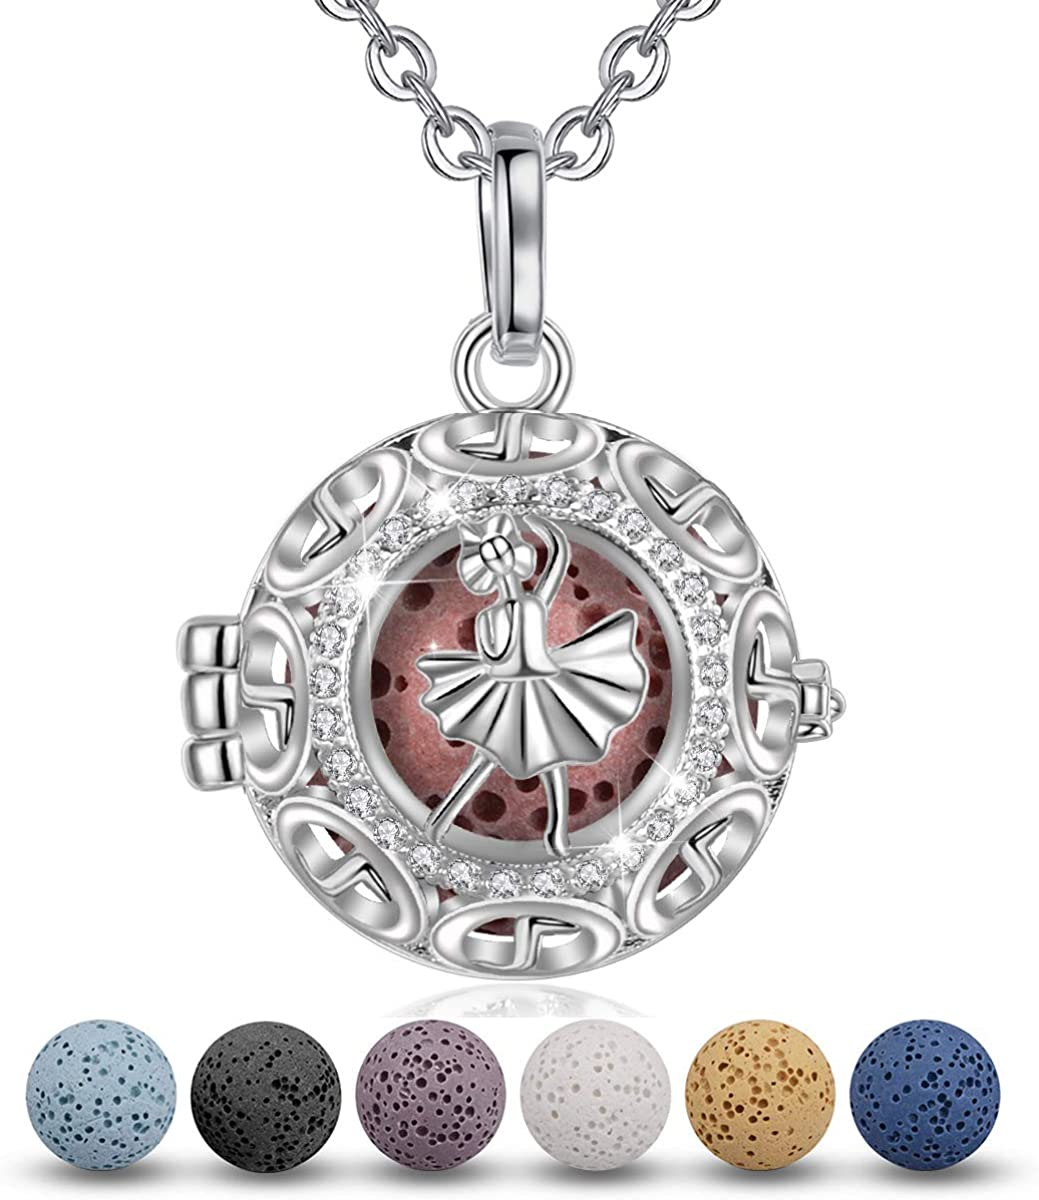 Fleur-de-Lis Oval Sterling Silver Essential Oil Diffuser Necklace ~ Locket with Natural Lava Stones